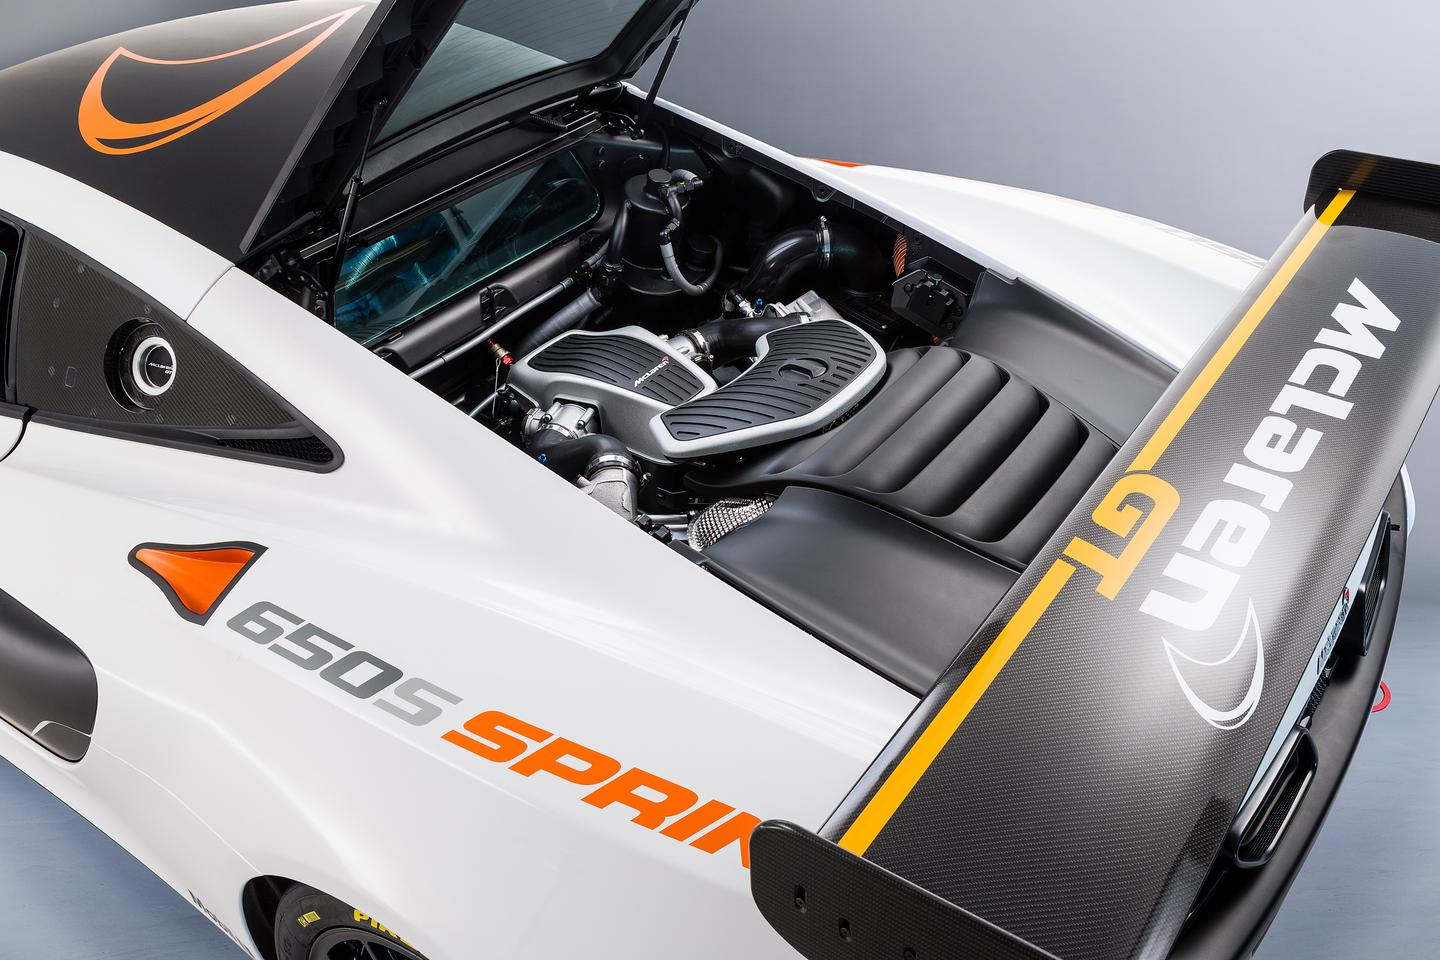 The 3.8 twin-turbo V8 still puts out the same 641 hp, however McLaren assures that a re-calibrated engine and gearbox will bring about a car that's even more adept on the track